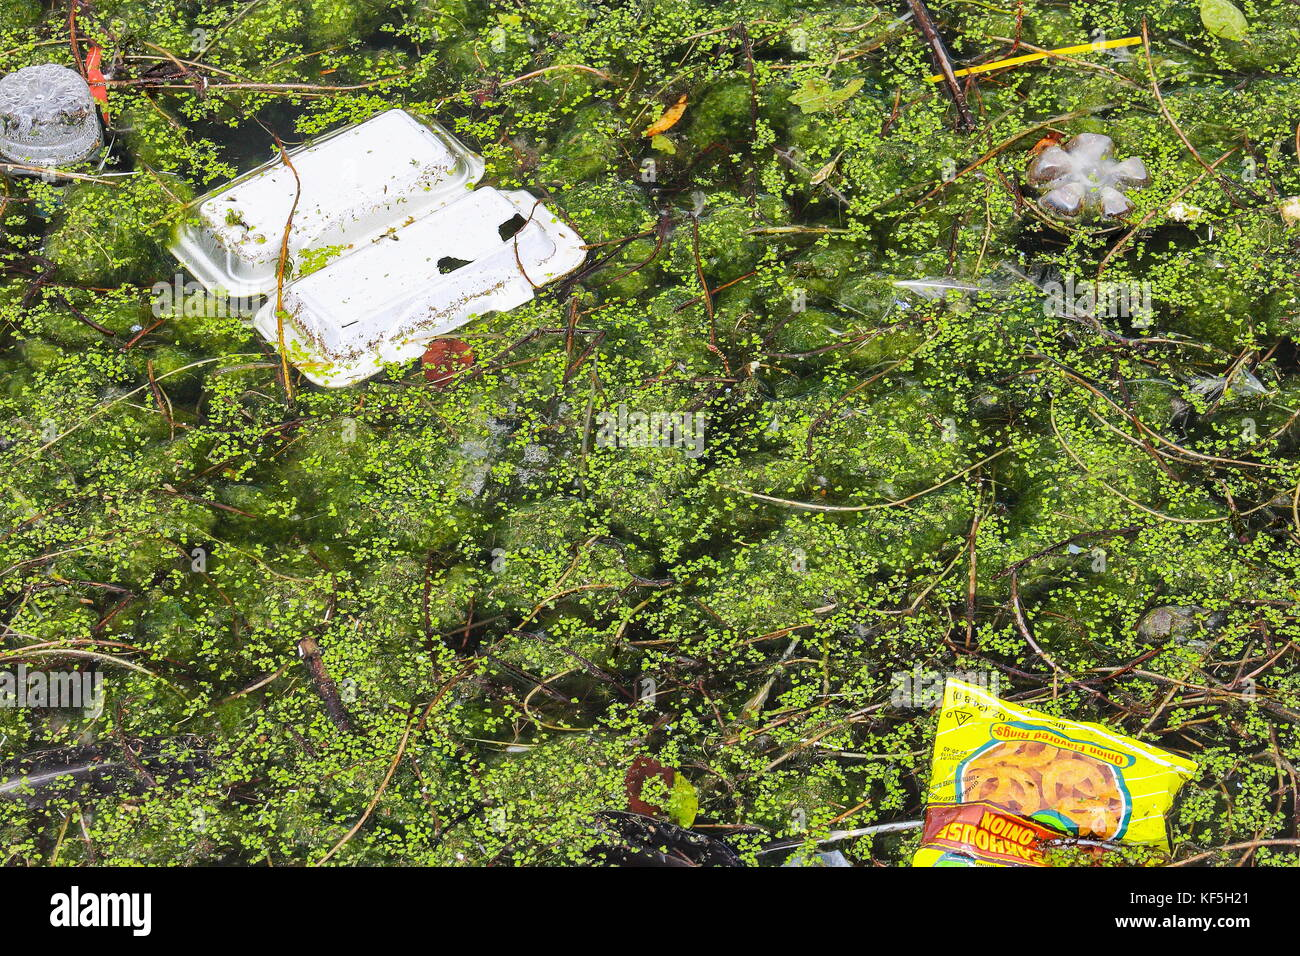 Rubbish polluting a fresh water lagoon. - Stock Image